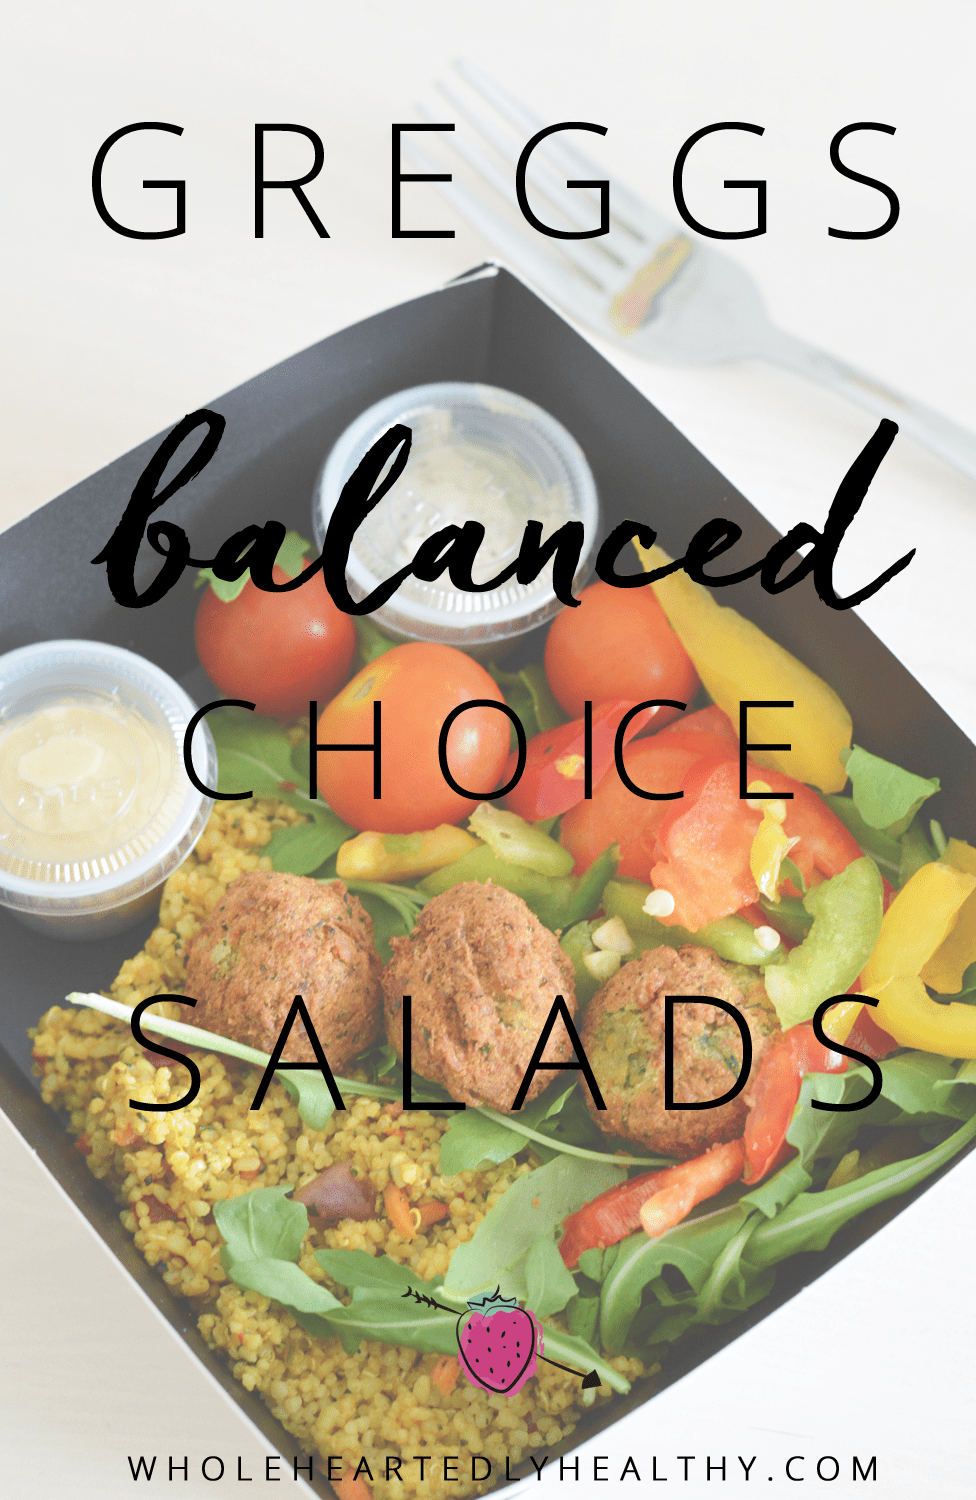 Greggs balanced choice salads